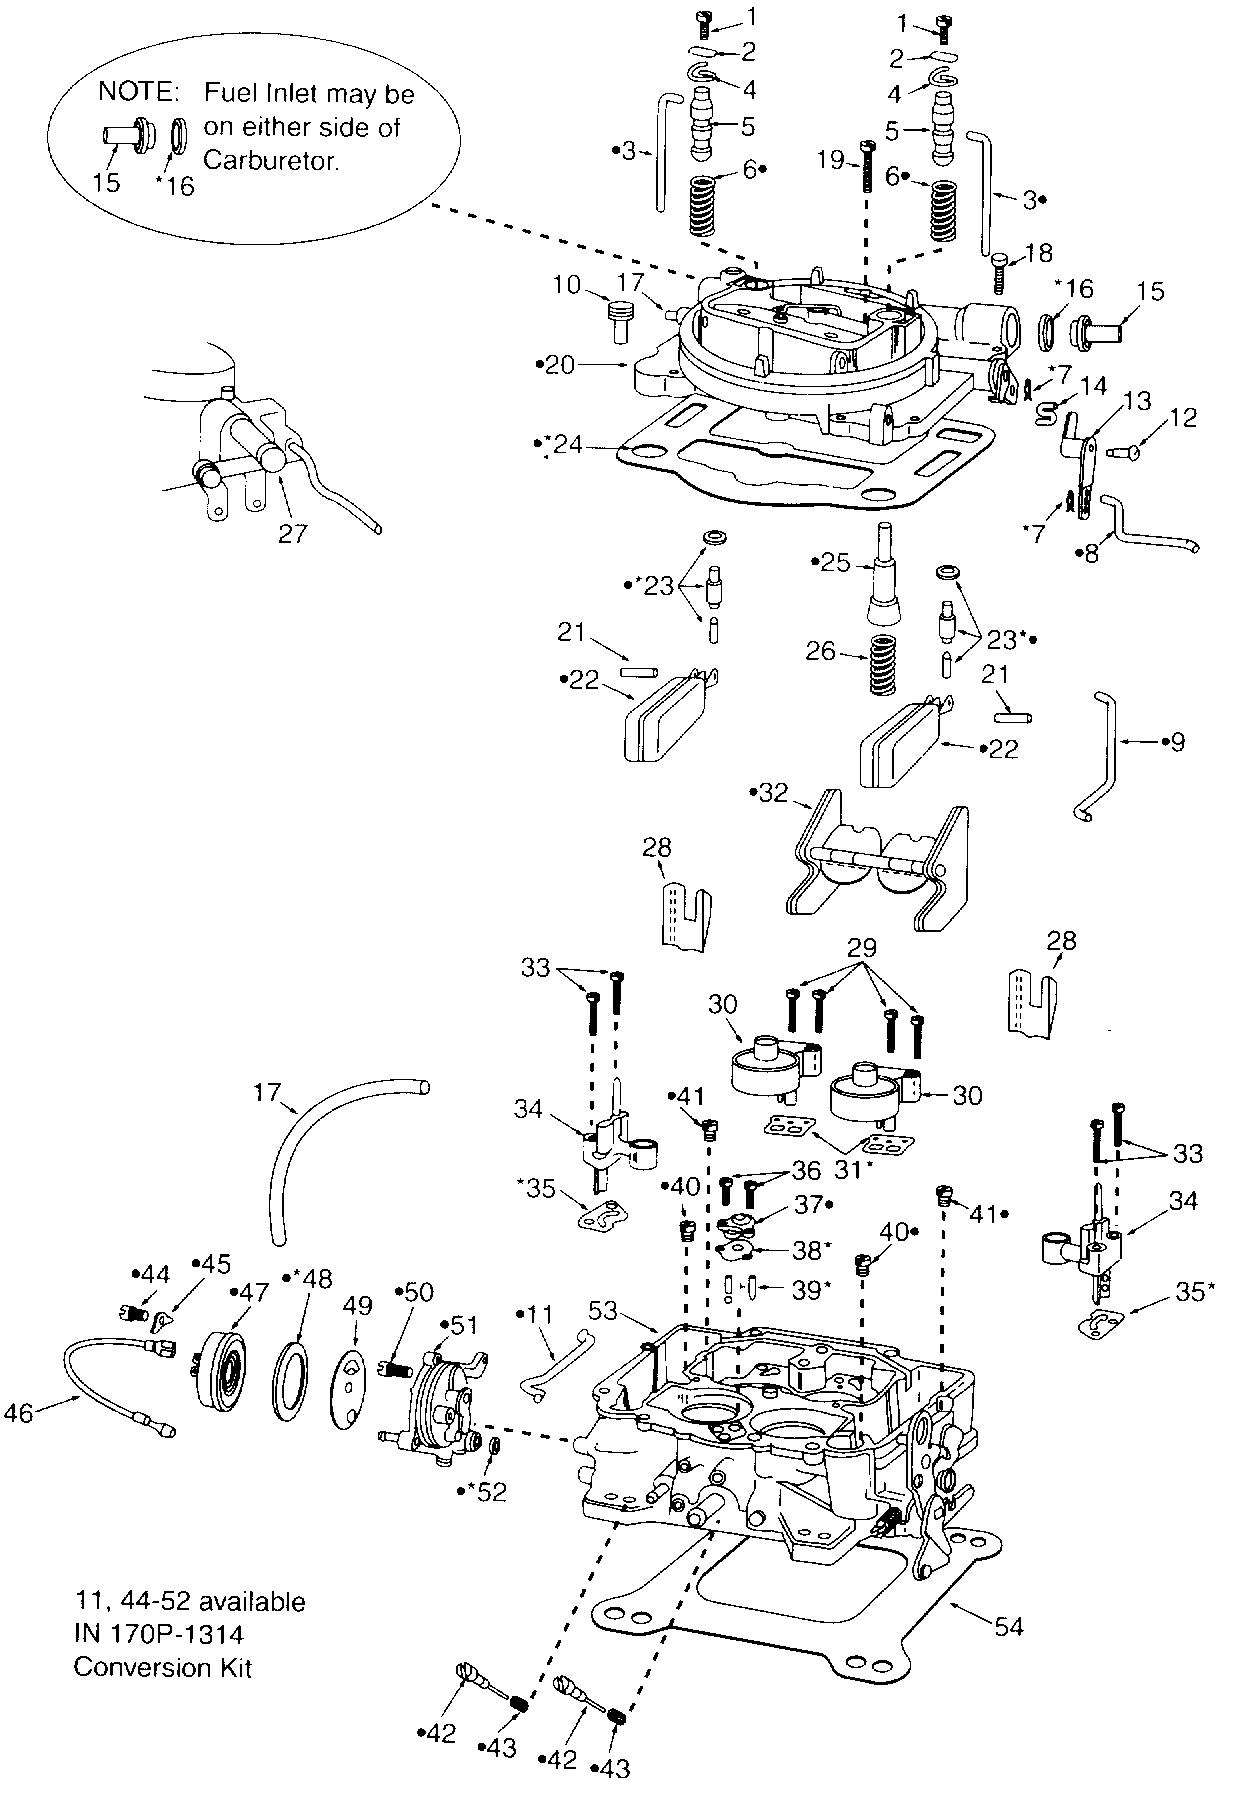 Step-up retainer spring 5. Step-up piston 6. Vacuum piston spring 7. Pin  spring 8. Pump connector rod. 9. Fast idle cam connector rod 10.  Countershaft lever